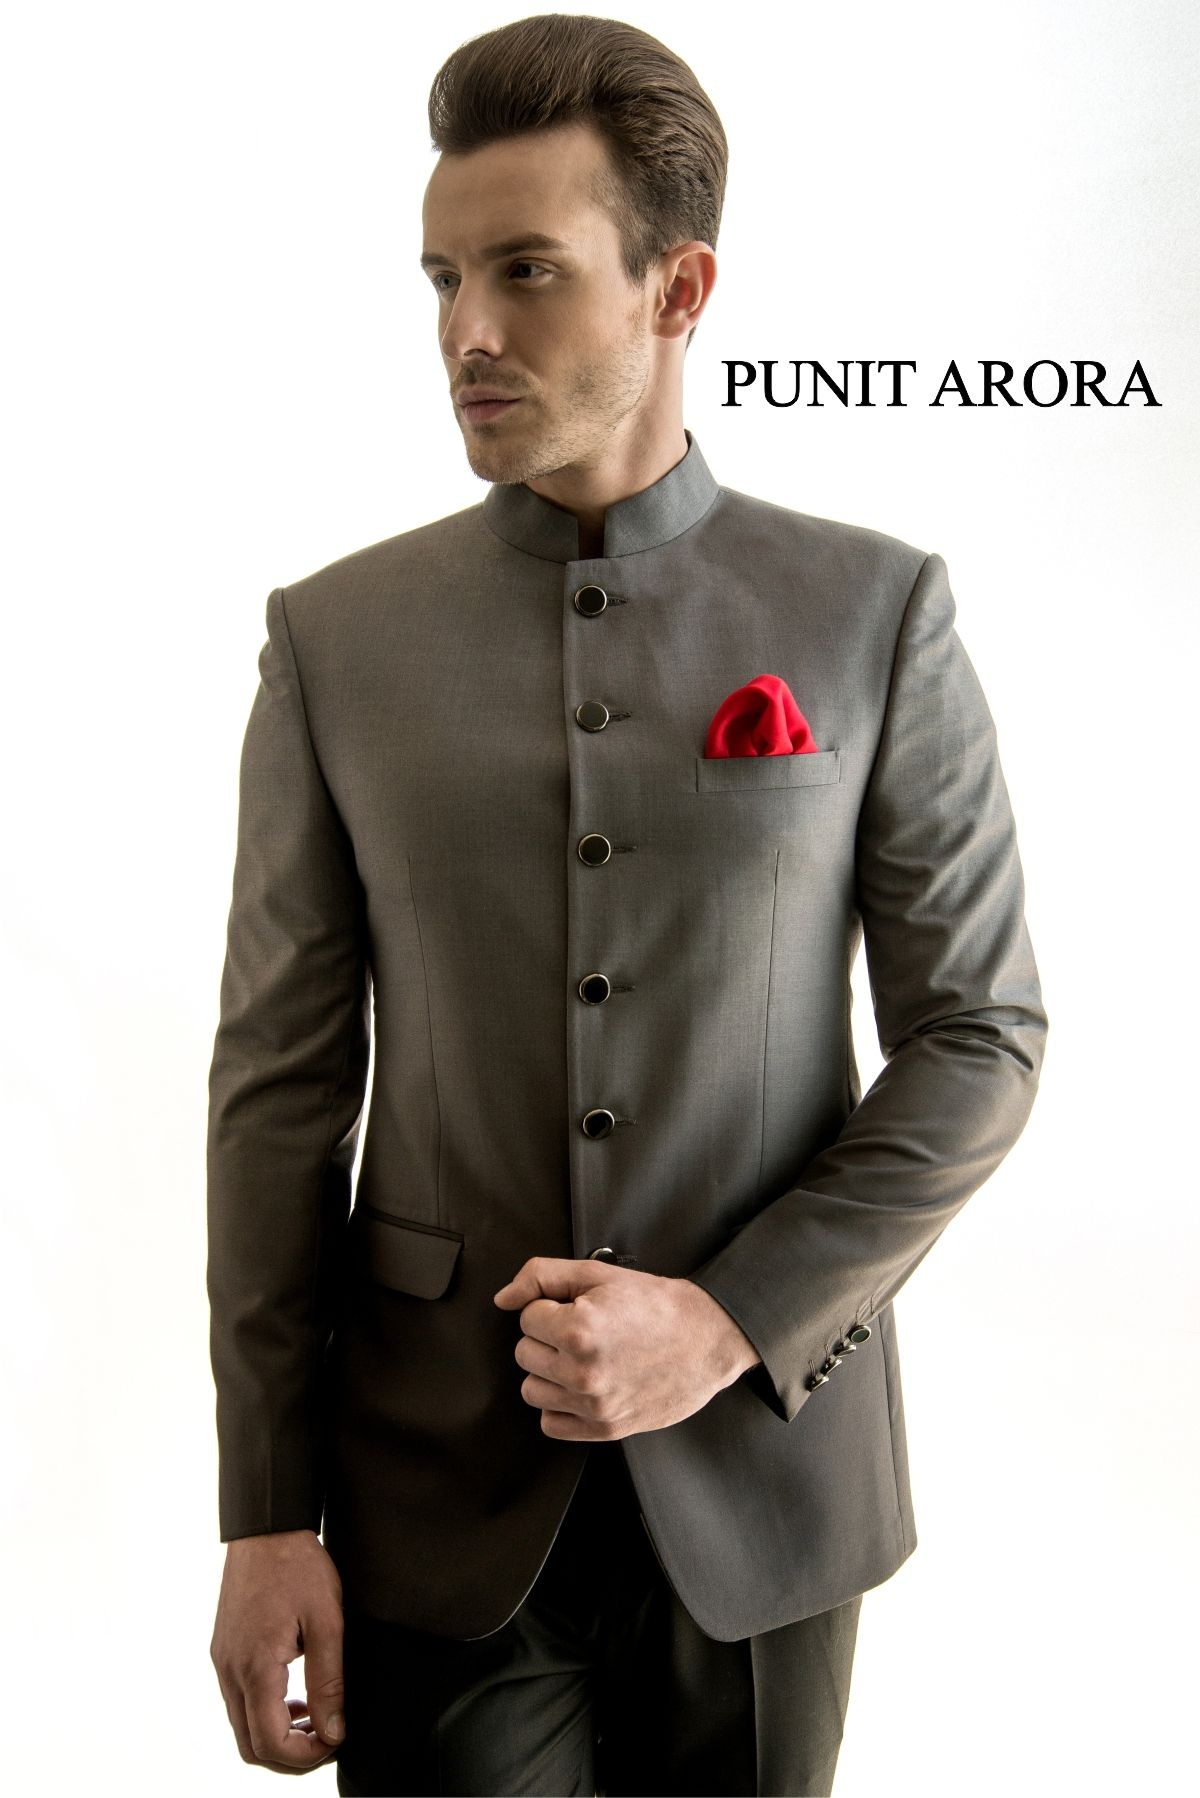 Prince coat suit nirankar in pinterest suits sherwani